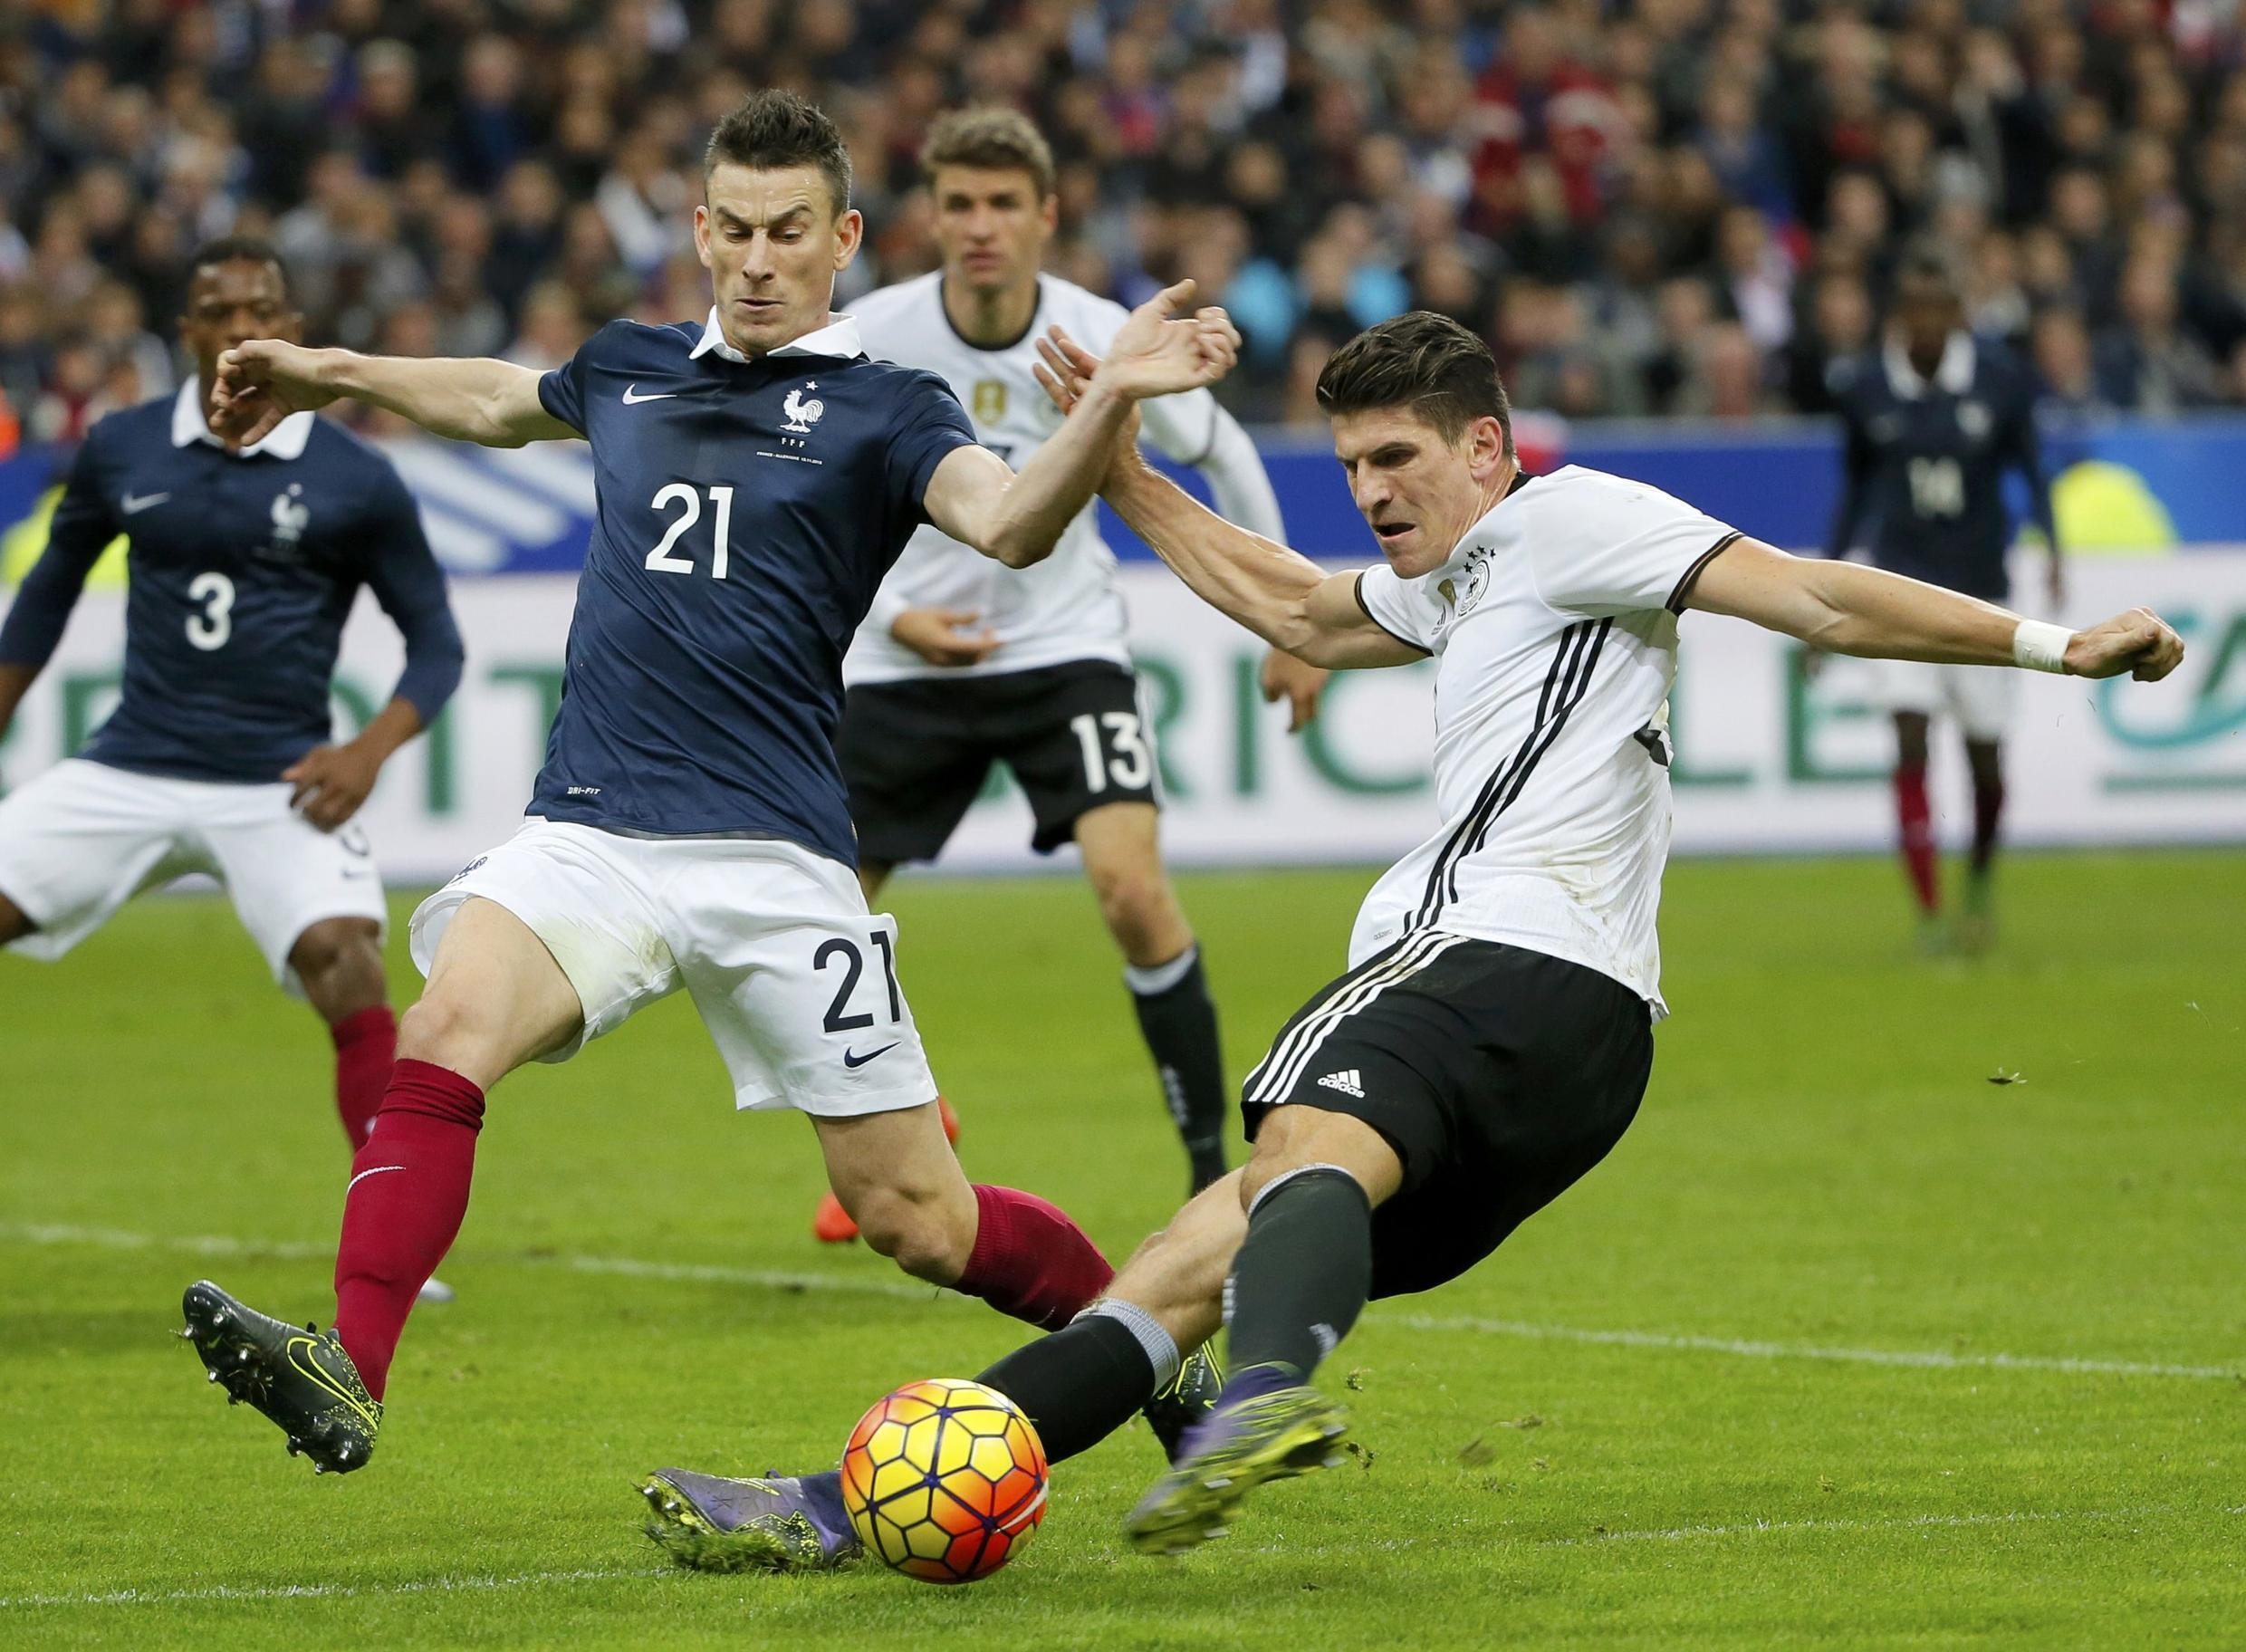 France's Laurent Koscielny in action with Germany's Mario Gomez during the France-Germany friendly at Stade de France on 13 November, 2015